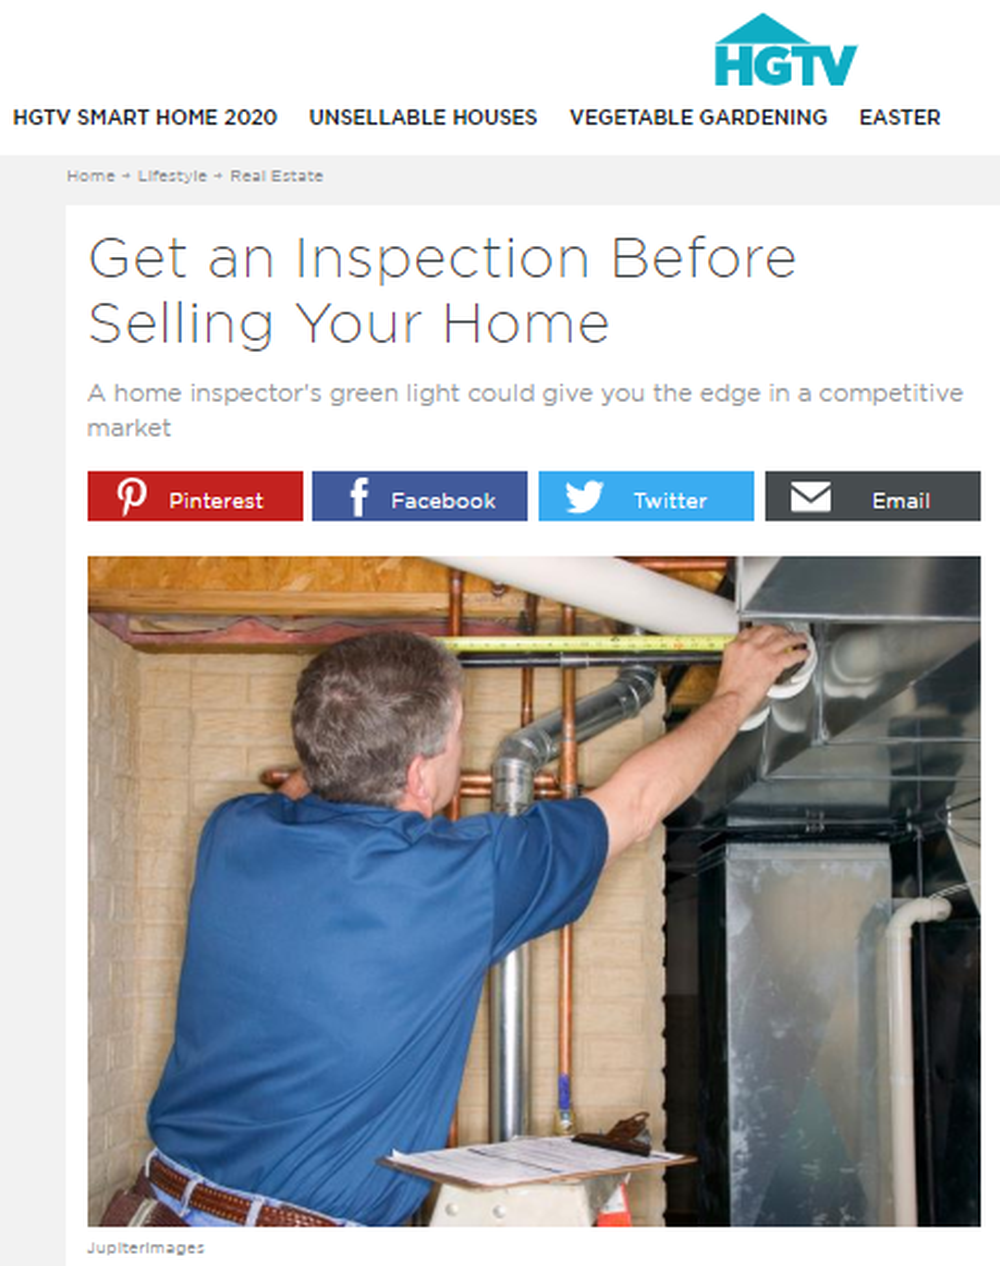 Get an Inspection Before Selling Your Home   HGTV (1).png